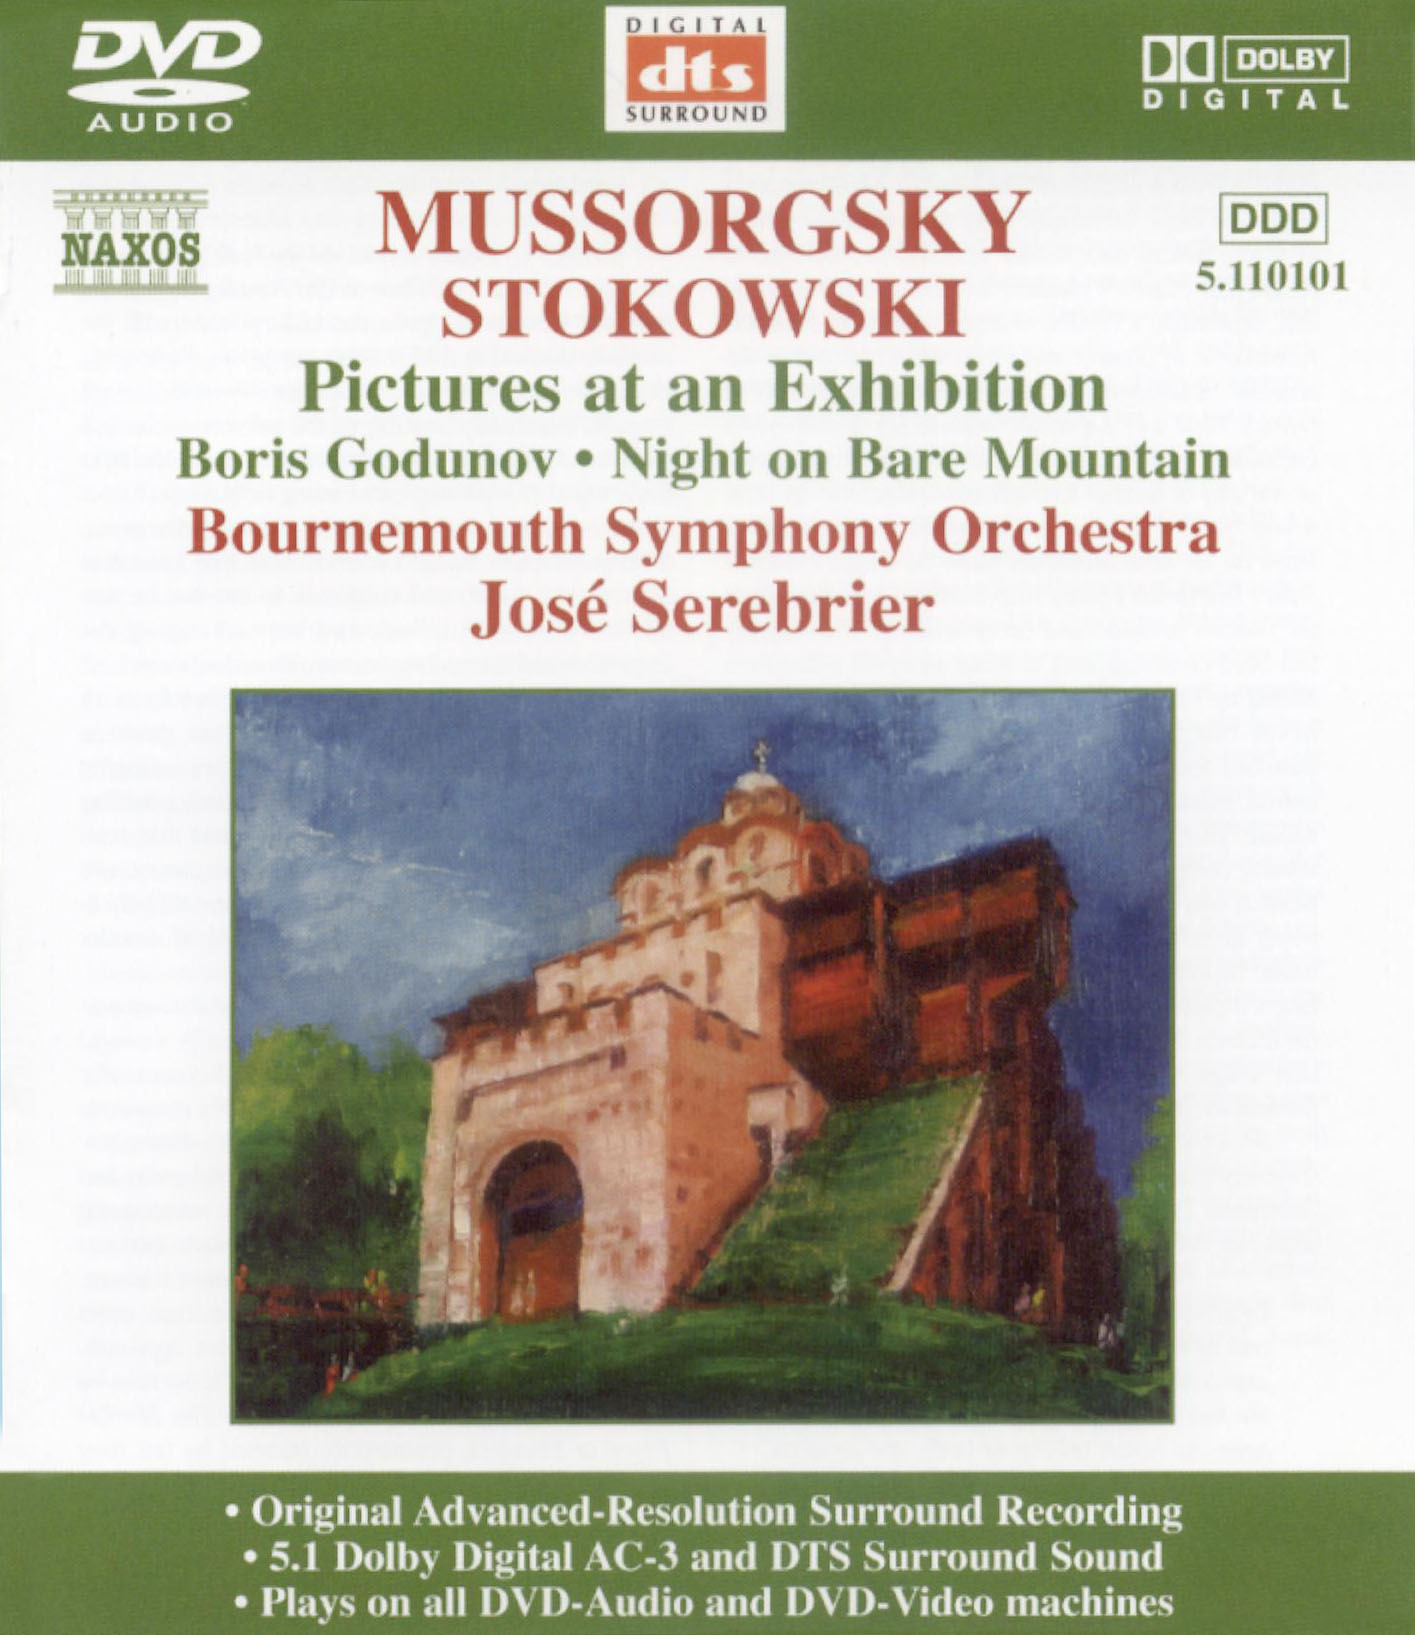 Sir Georg Solti/Chicago Symphony Orchestra: Modest Mussorgsky - Pictures at an Exhibition